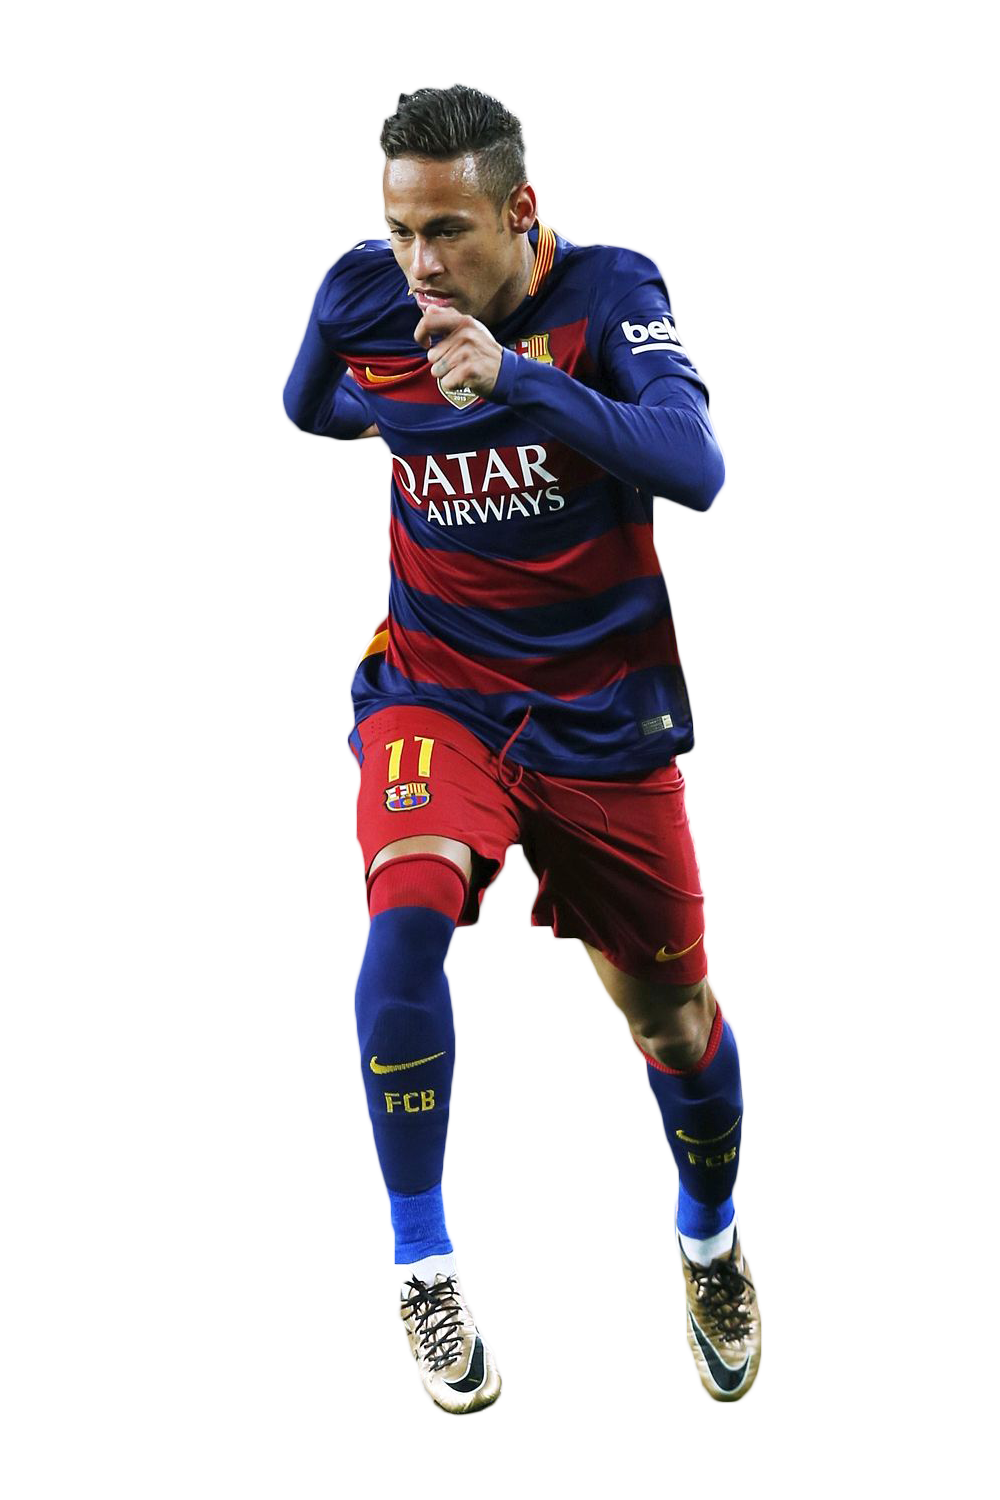 Football 2016 clipart banner freeuse library Neymar png clipart #44977 - Free Icons and PNG Backgrounds banner freeuse library